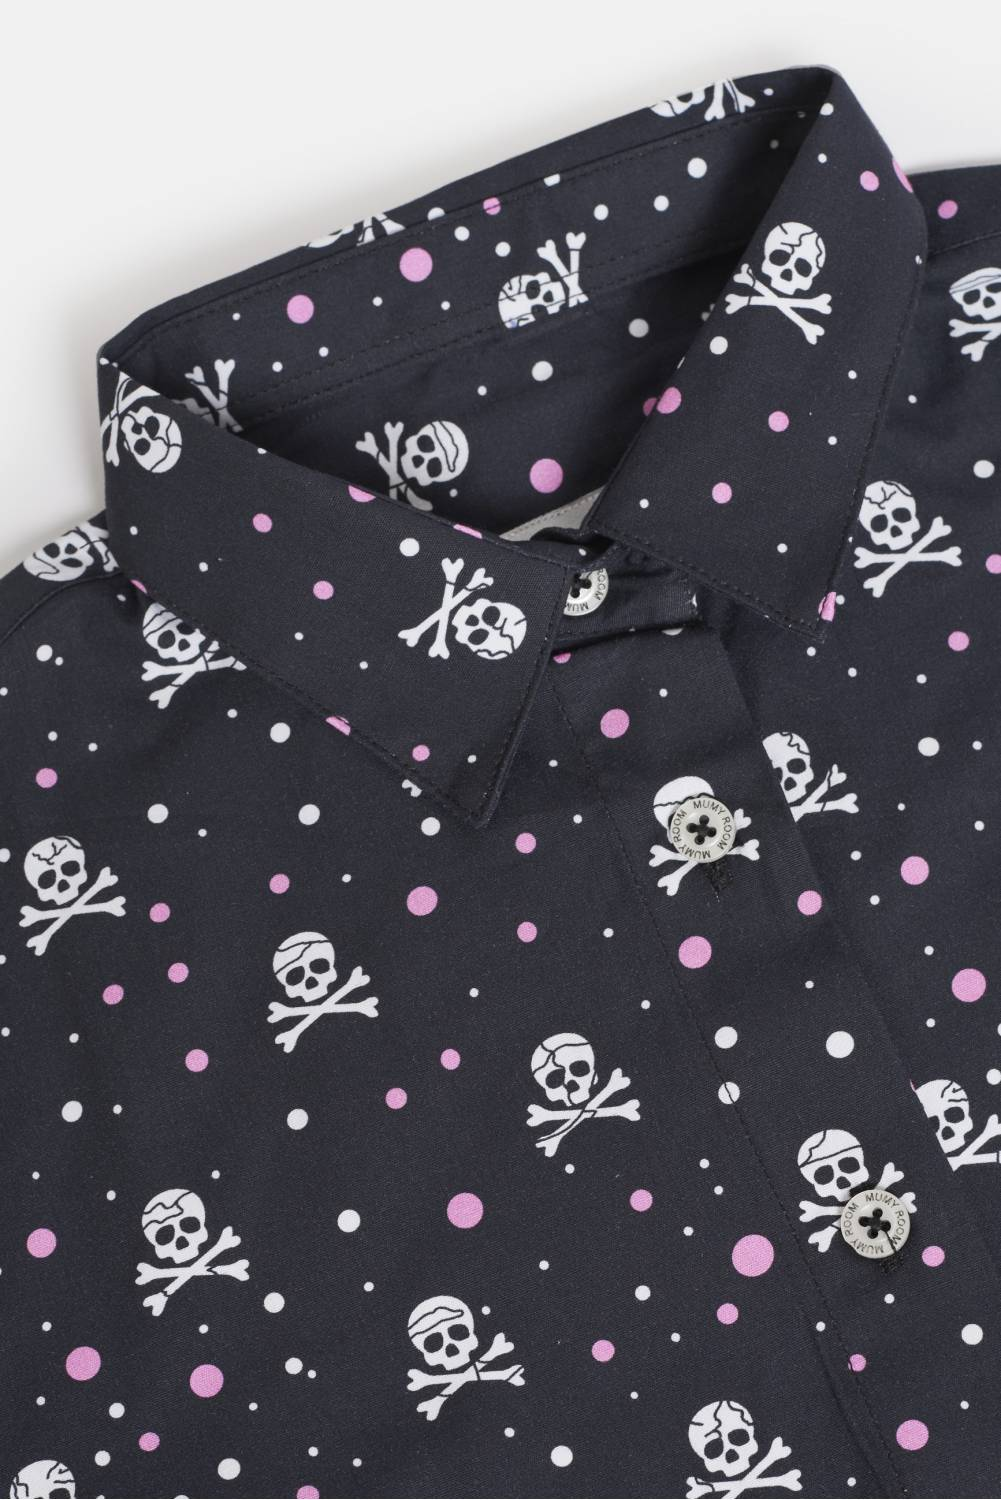 WOMEN'S PRINTED SHIRT ROCKER LINE SKULLS WITH PINK POLKA DOTS